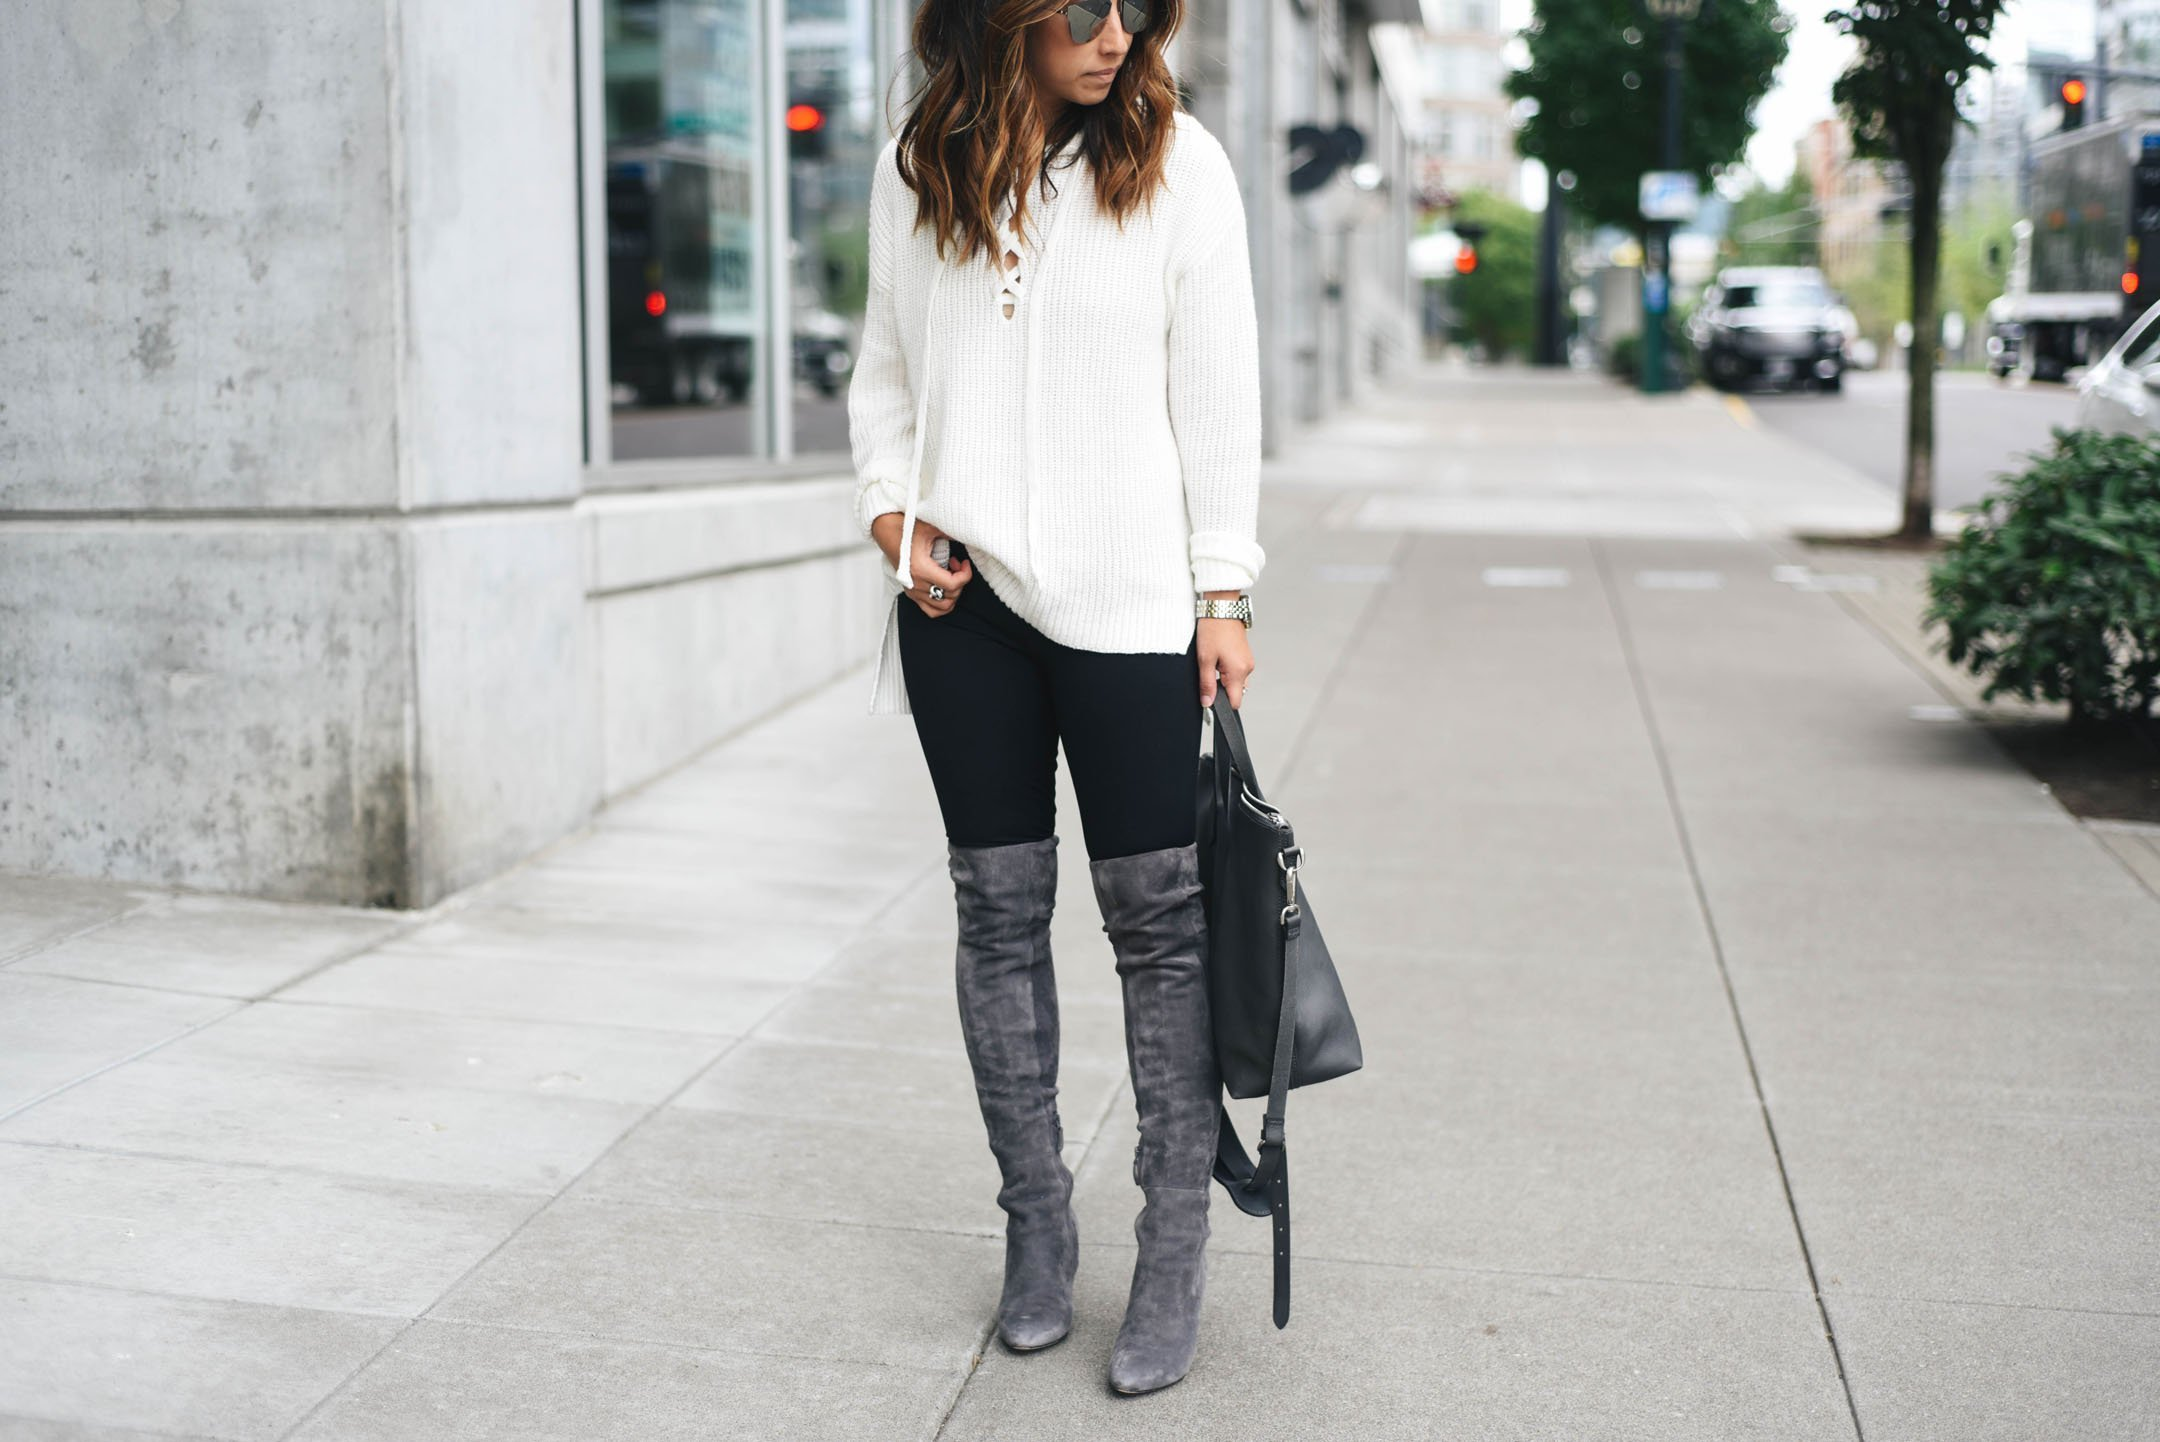 f2263291098b Your Guide to Buying and Styling Over The Knee Boots - Crystalin Marie